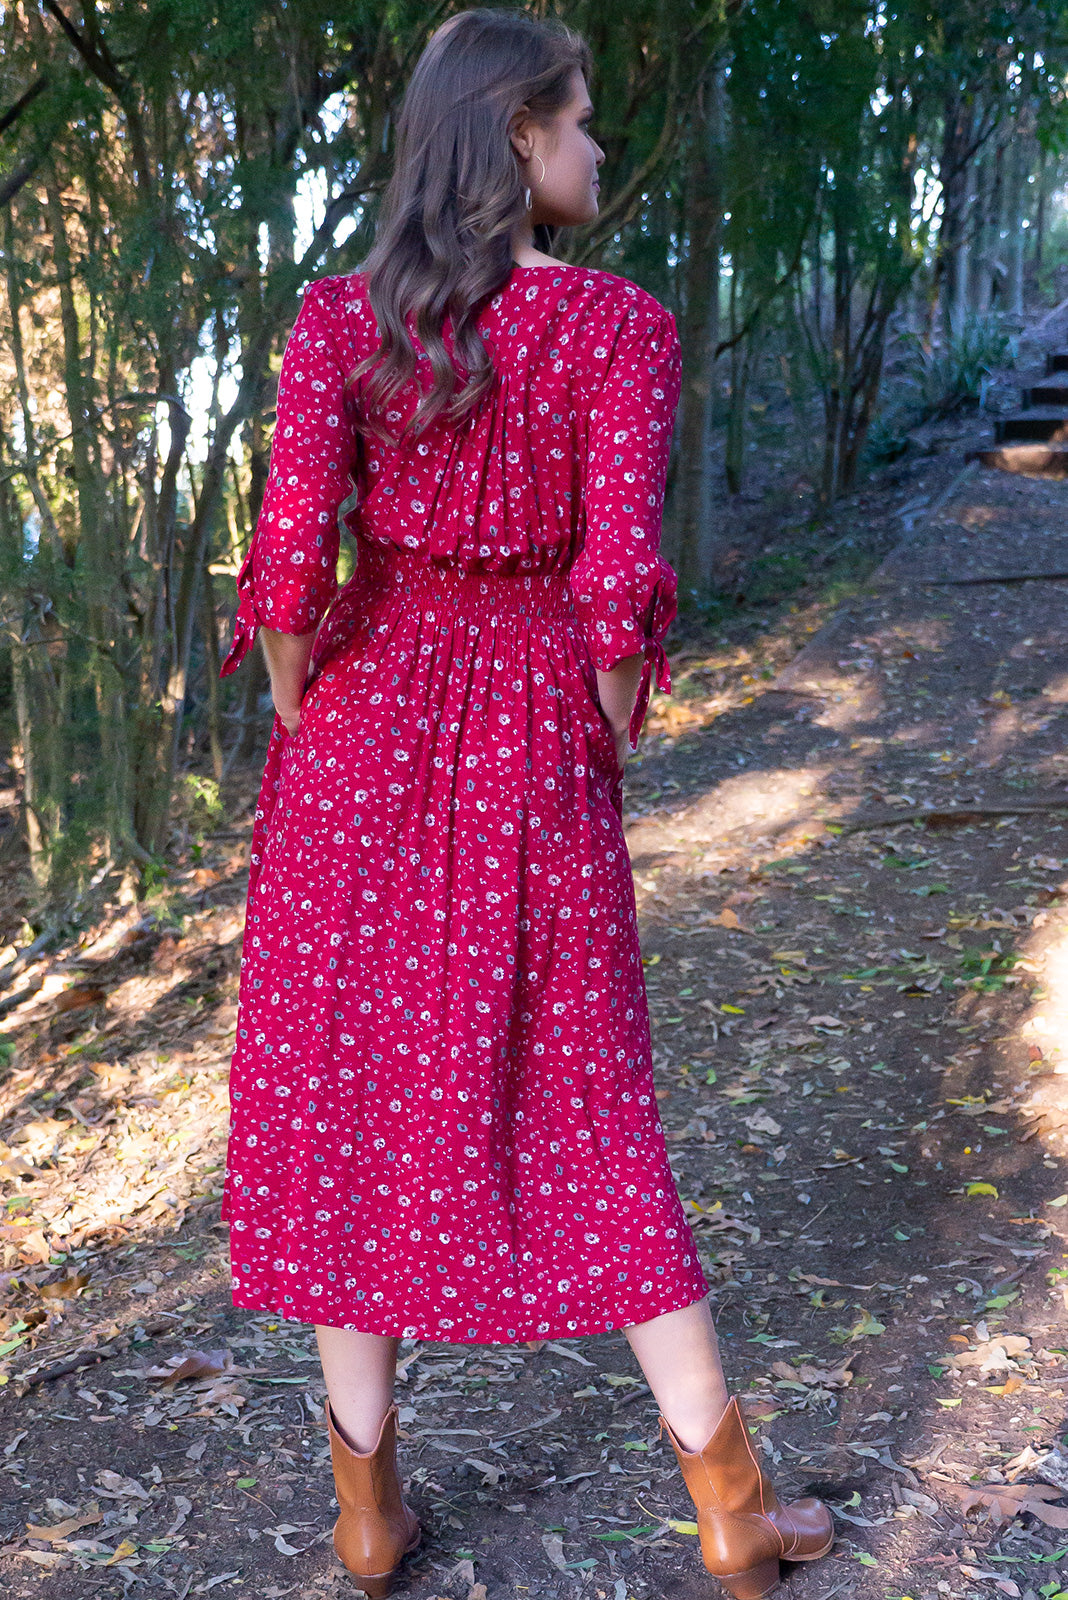 Judith Red Rea Dress vintage inspired classic cut. Midi length, complete button down red dress, 3 quarter sleeves. Deep red fabric featuring roses pattern.